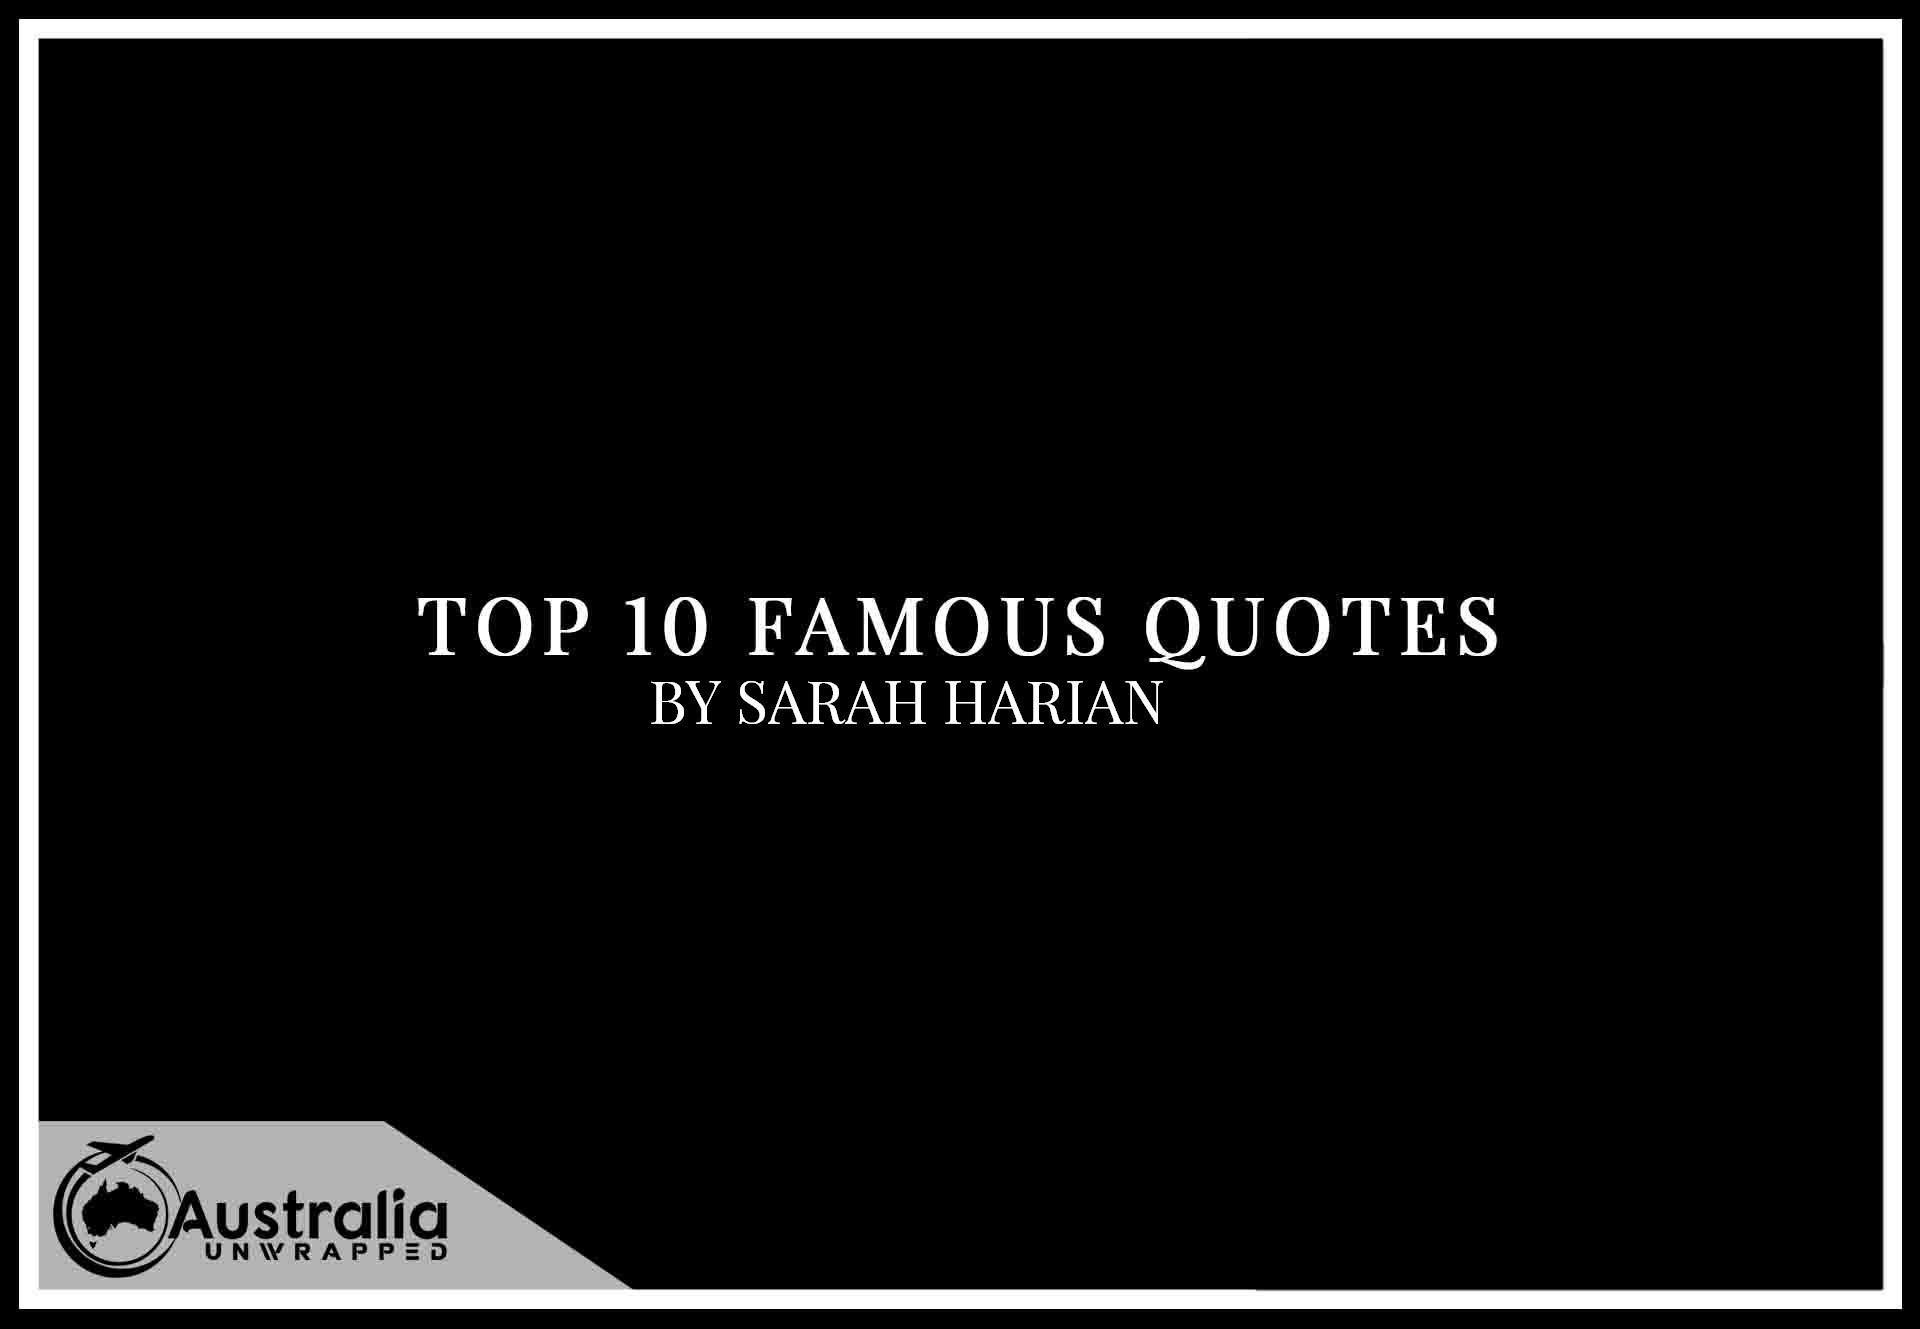 Top 10 Famous Quotes by Author Sarah Harian